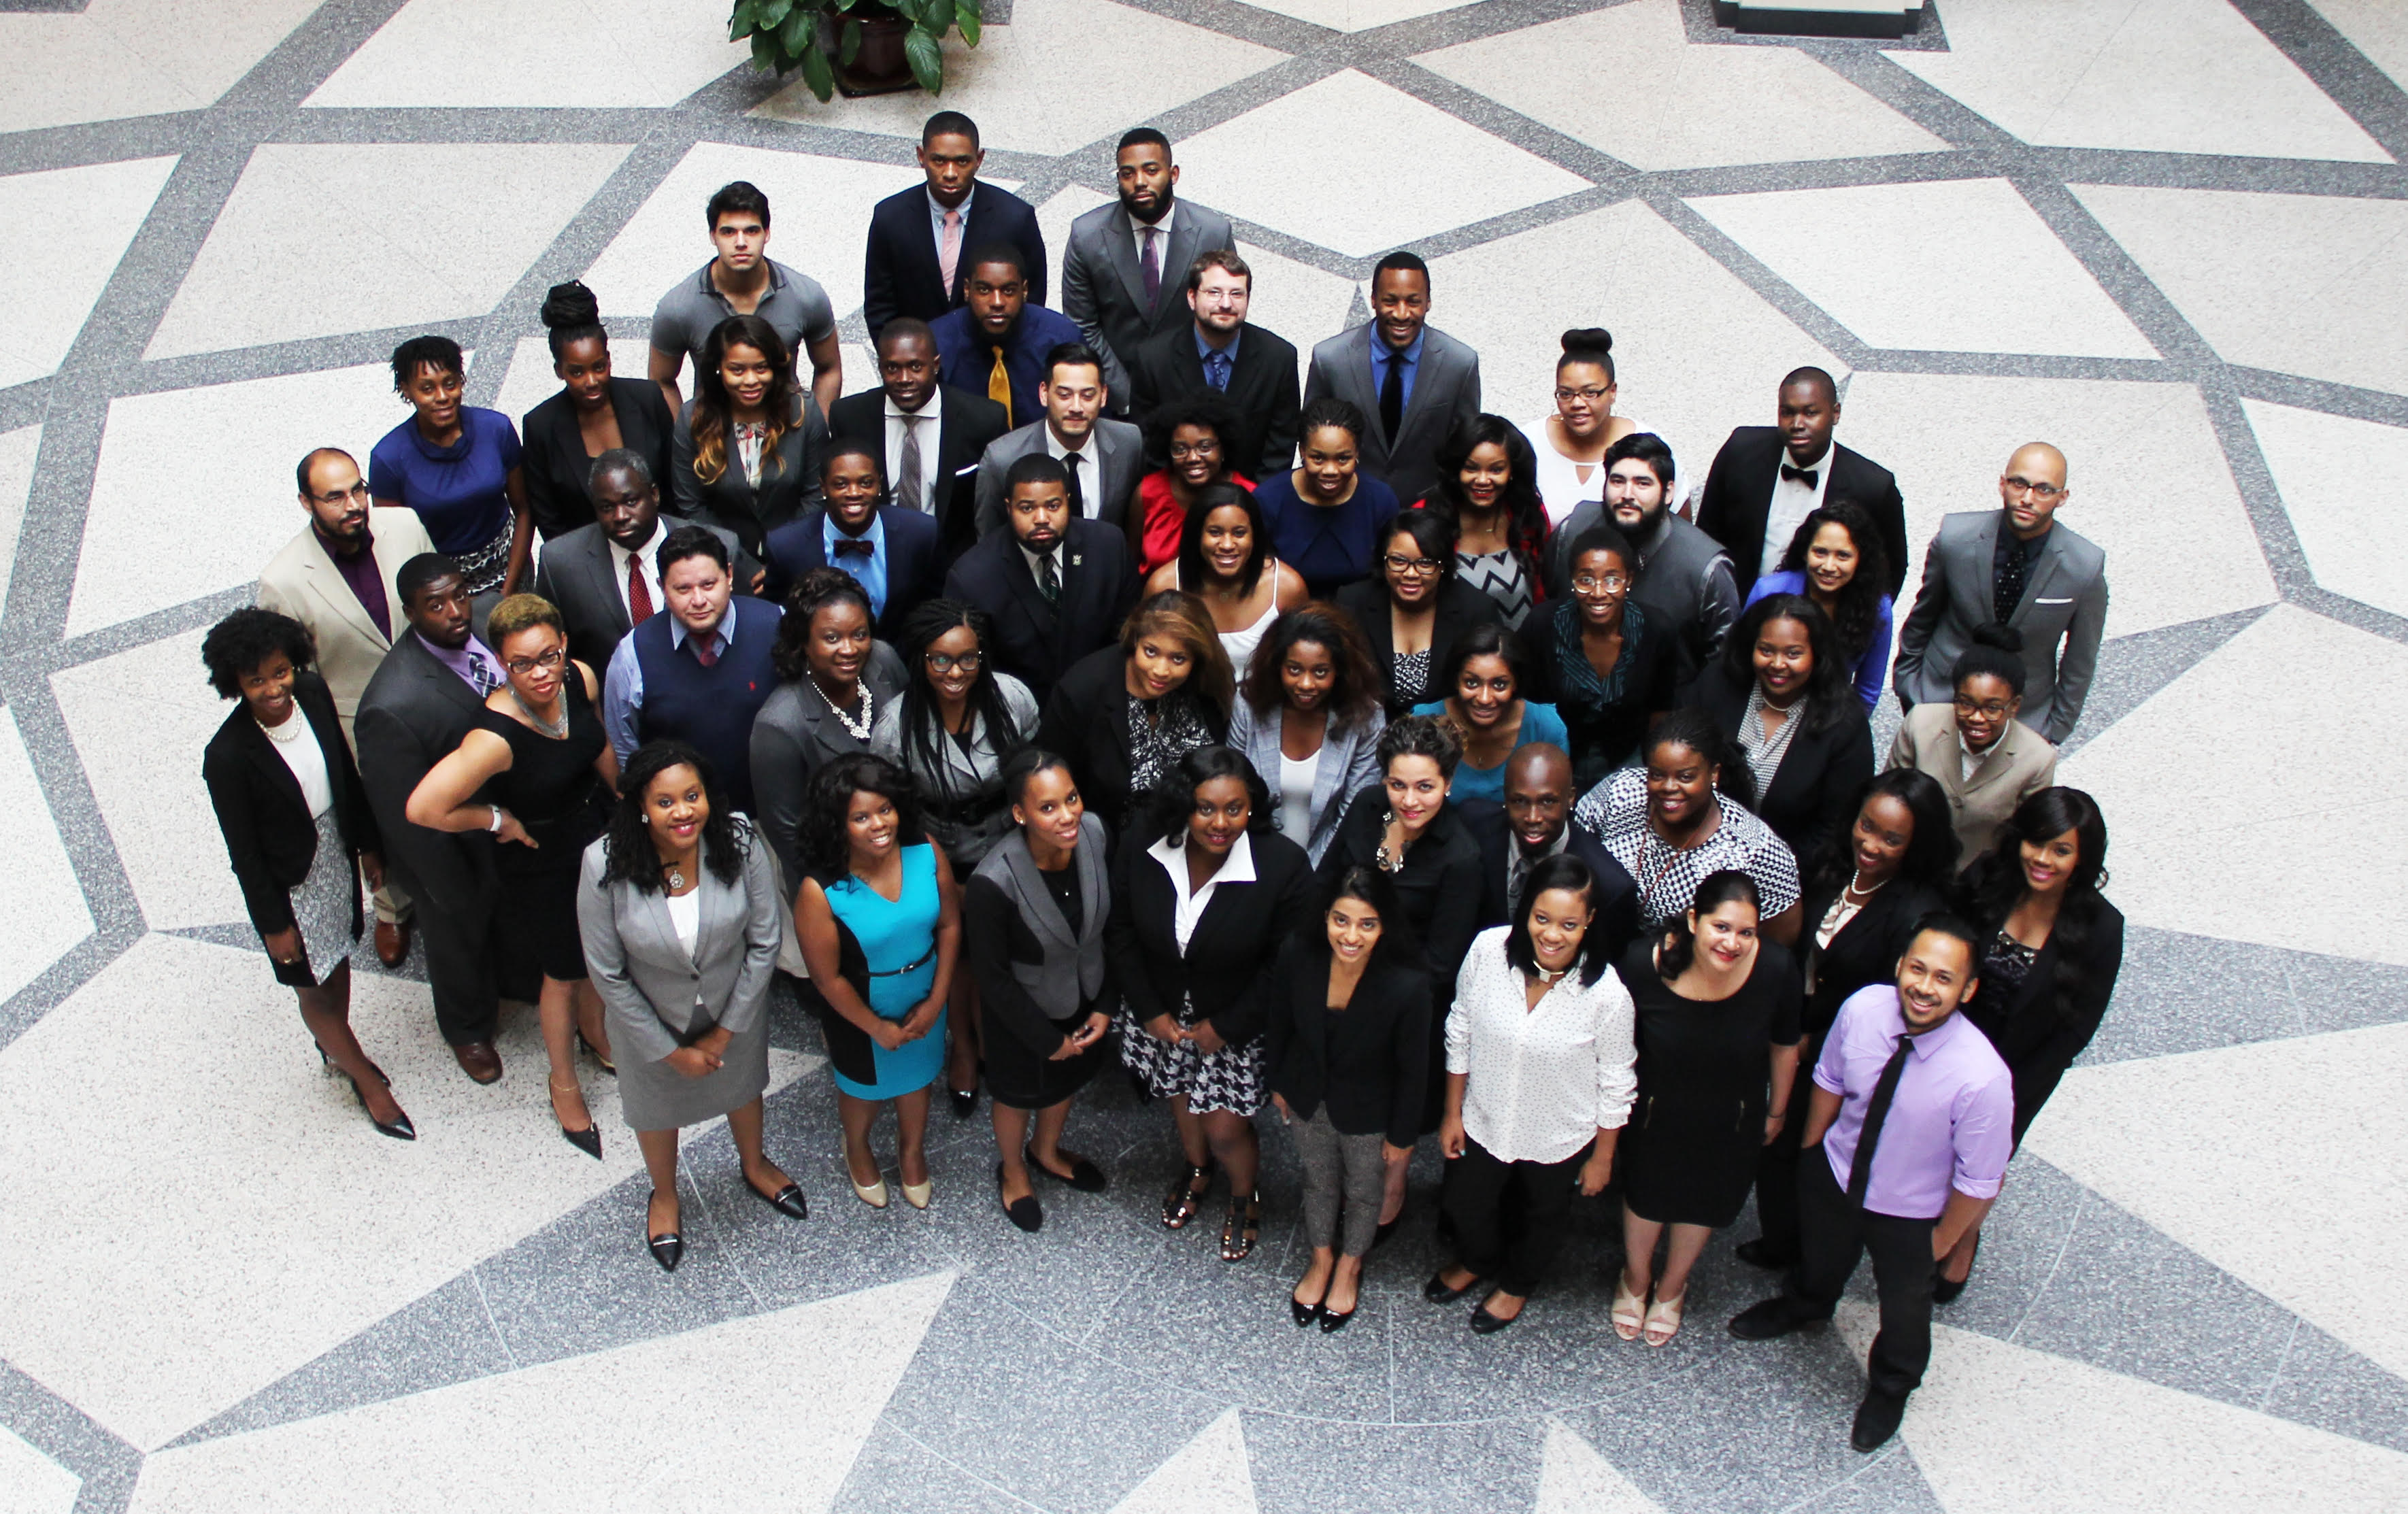 pre-law LSAT Law school admissions Law Students Lawyer ASAP prelaw College scholars applications